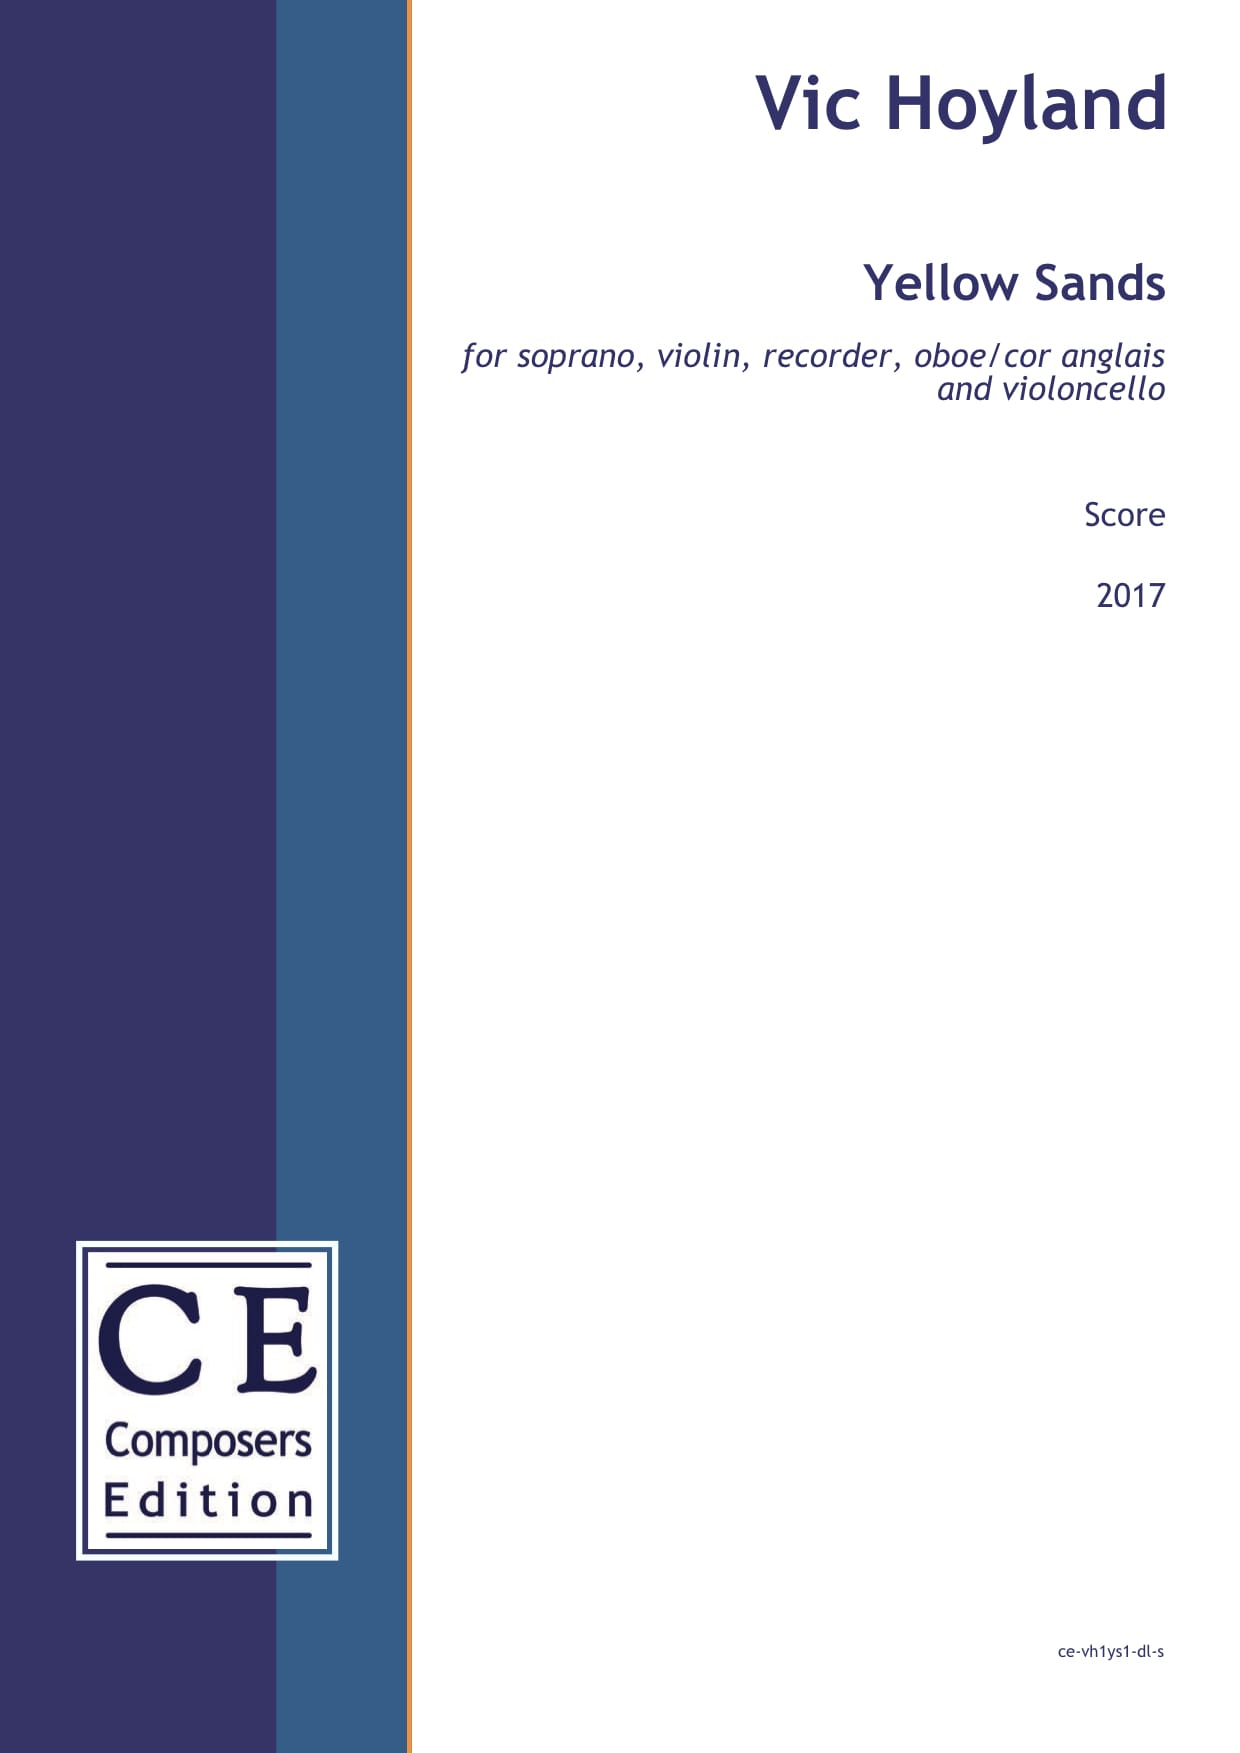 Vic Hoyland: Yellow Sands for soprano, violin, recorder, oboe/cor anglais and violoncello